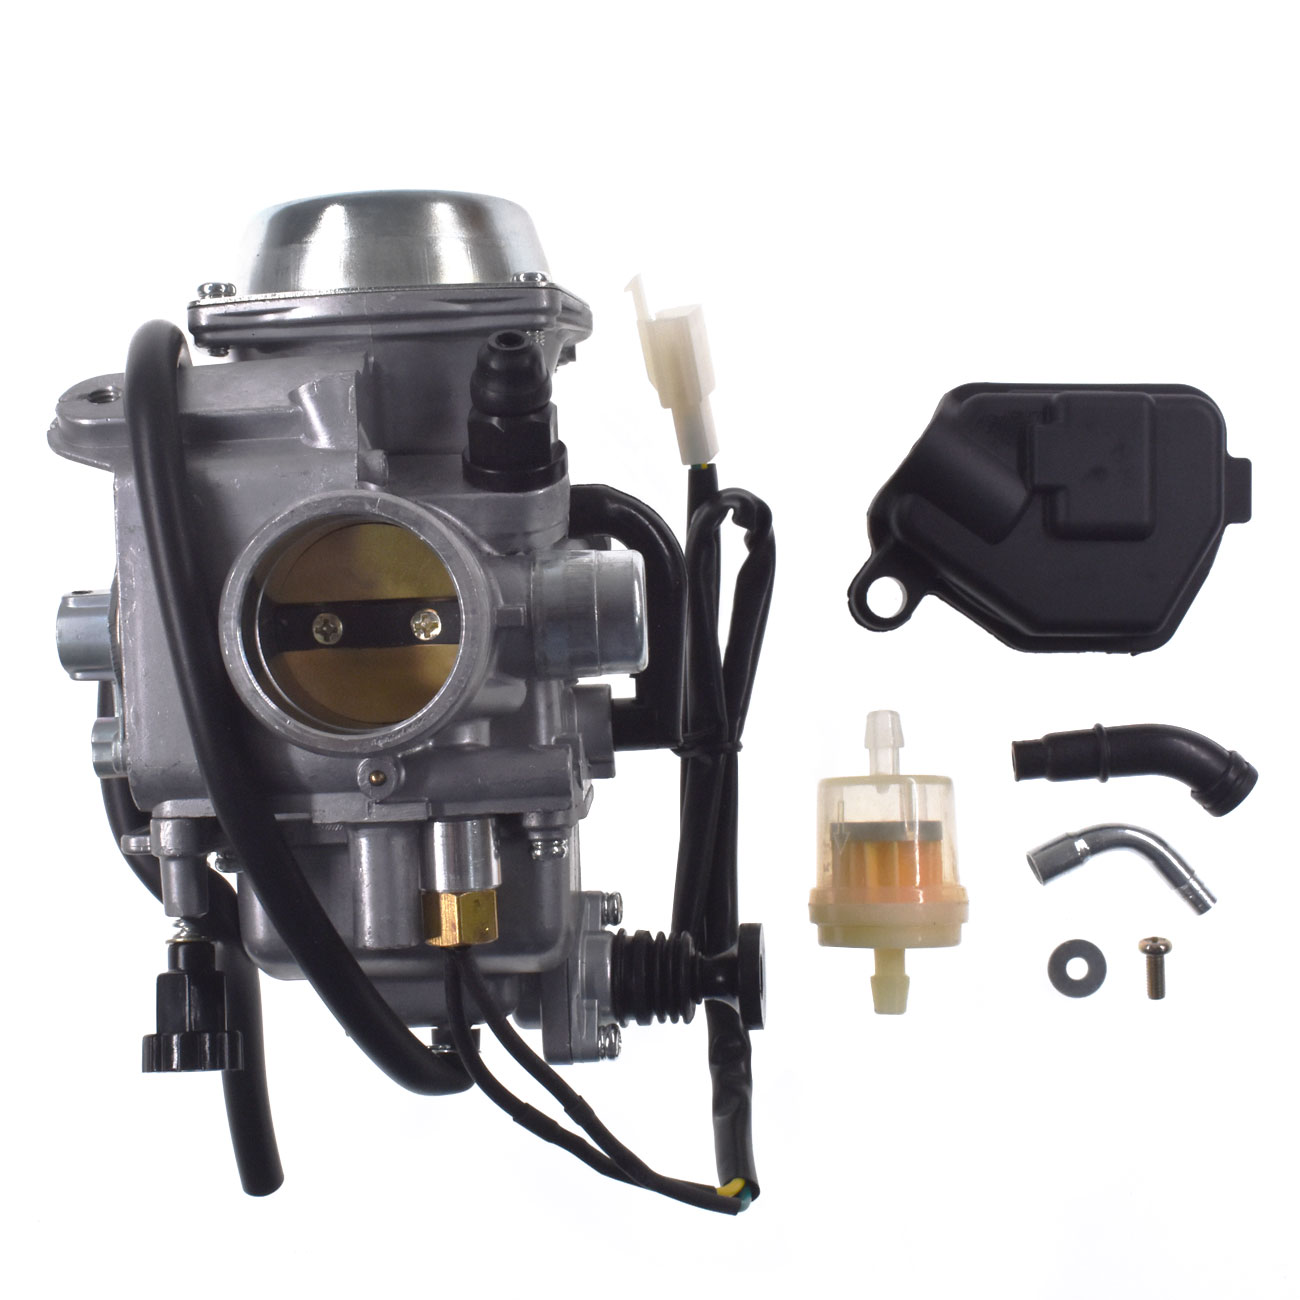 Carburetor Carb FOR Honda TRX 450 Foreman 2002 2003 2004 16100-HN0-672 пуховик bergans of norway bergans of norway be071emycz48